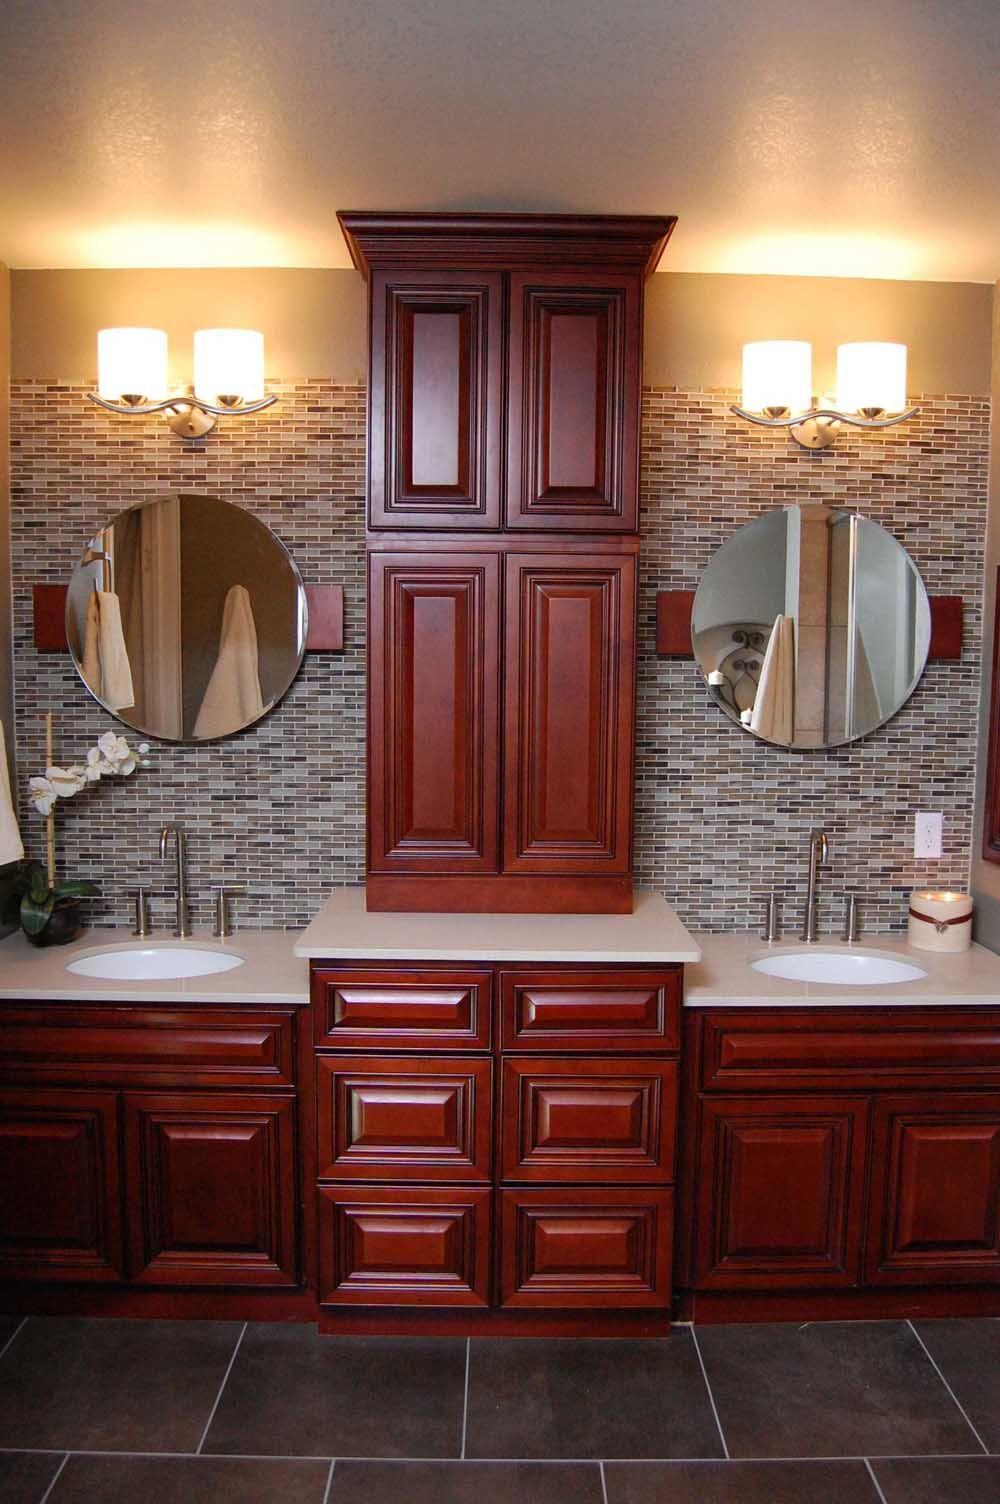 Rta Kitchen Cabinets & Bathroom Vanity Store Cherryville Bathroom Vanities by RTA CabiStore | Best bathroom